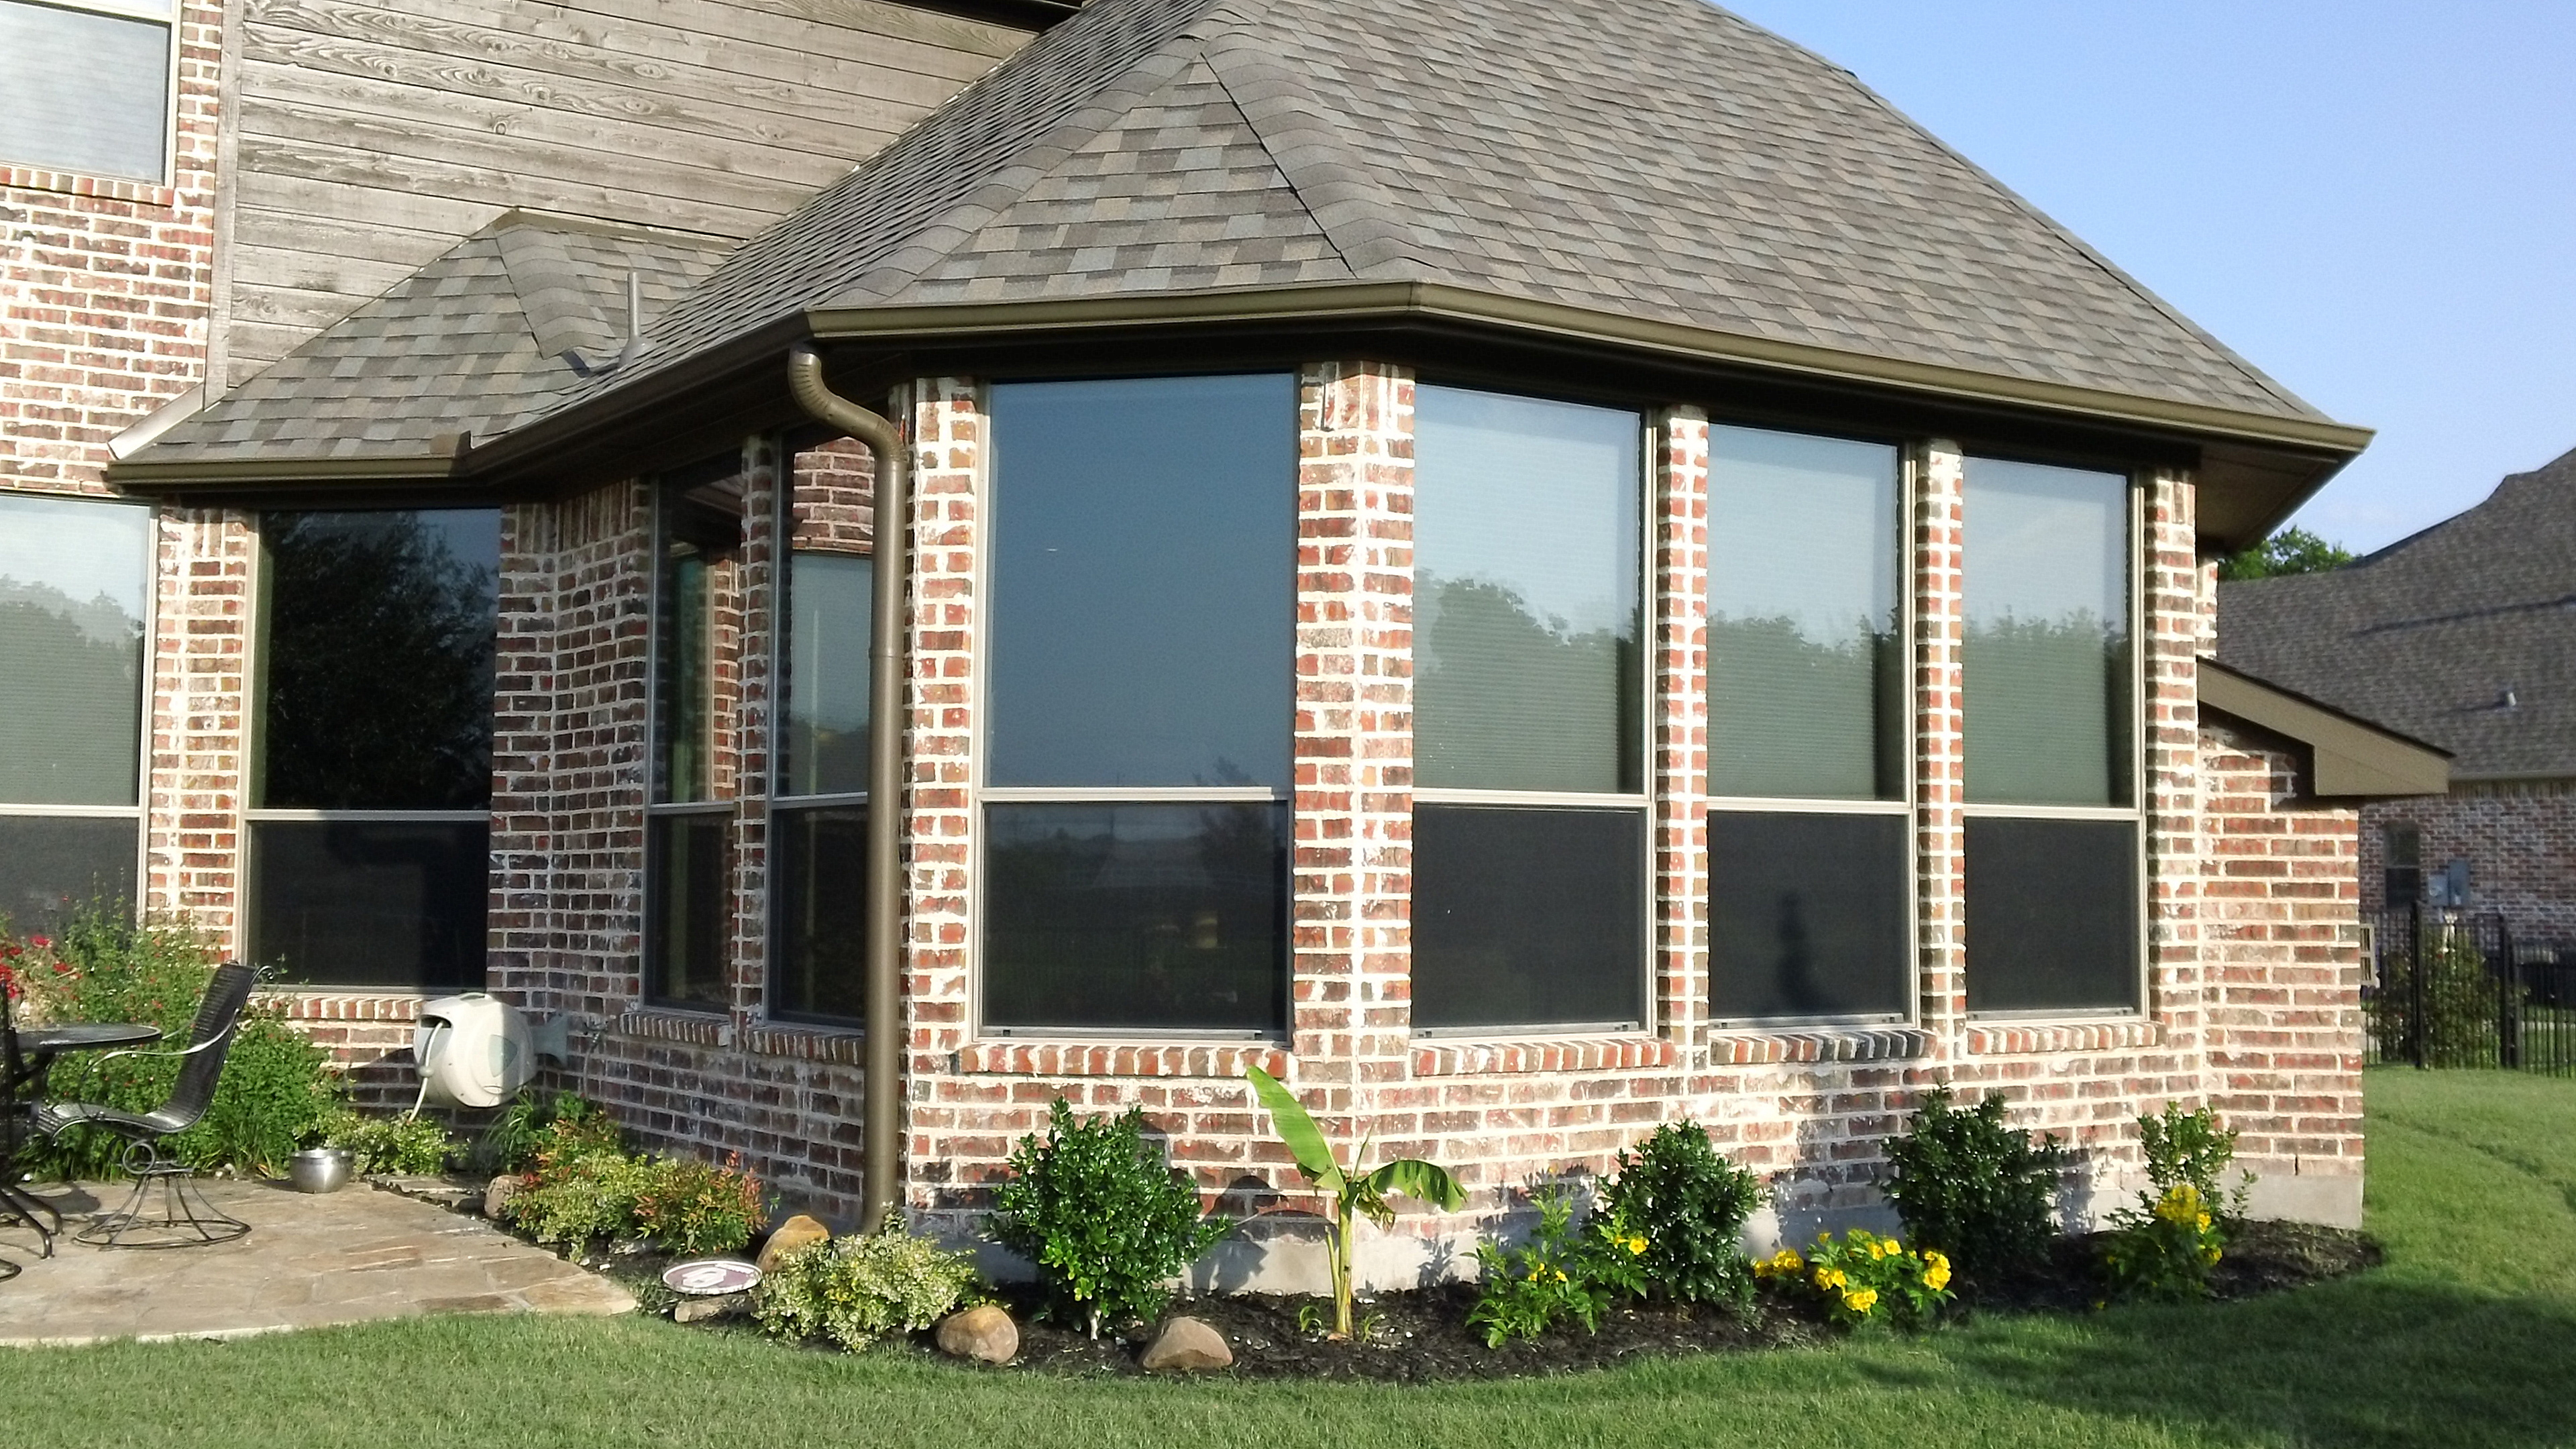 Residential tinting company tint masters edmonton for Windows for residential homes